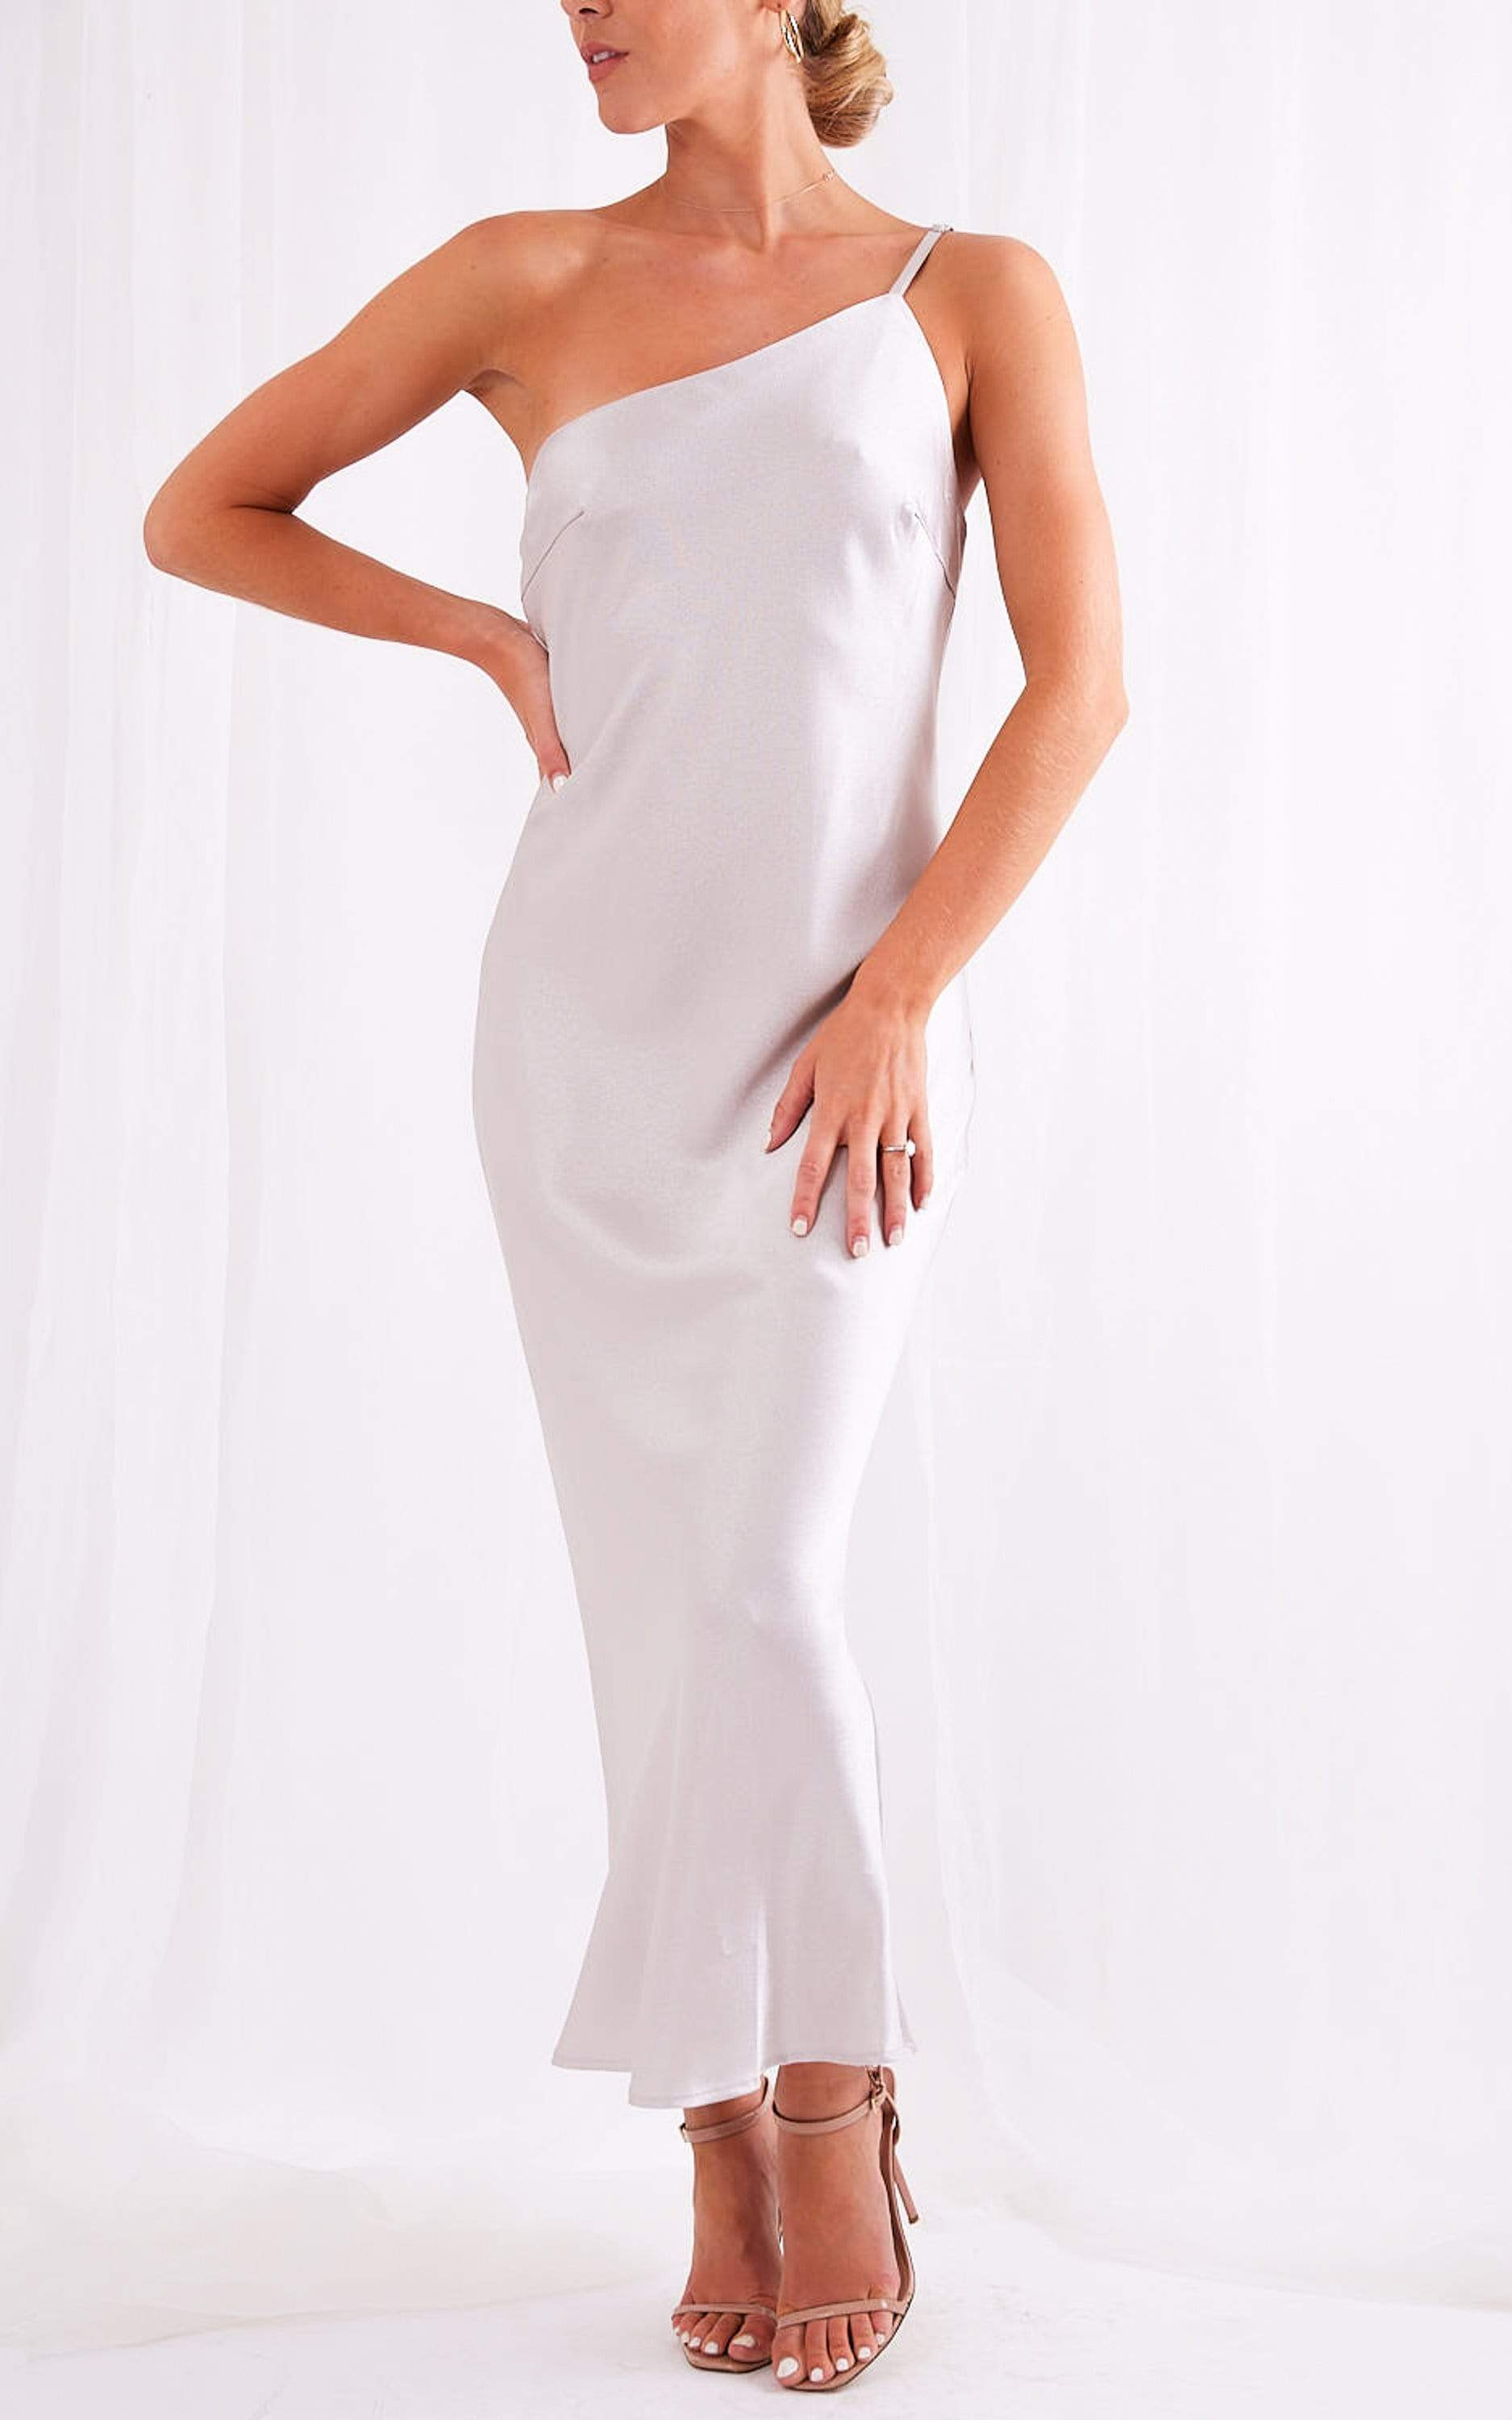 Amelia Slip Dress - Silver, Dress - Pretty Lavish